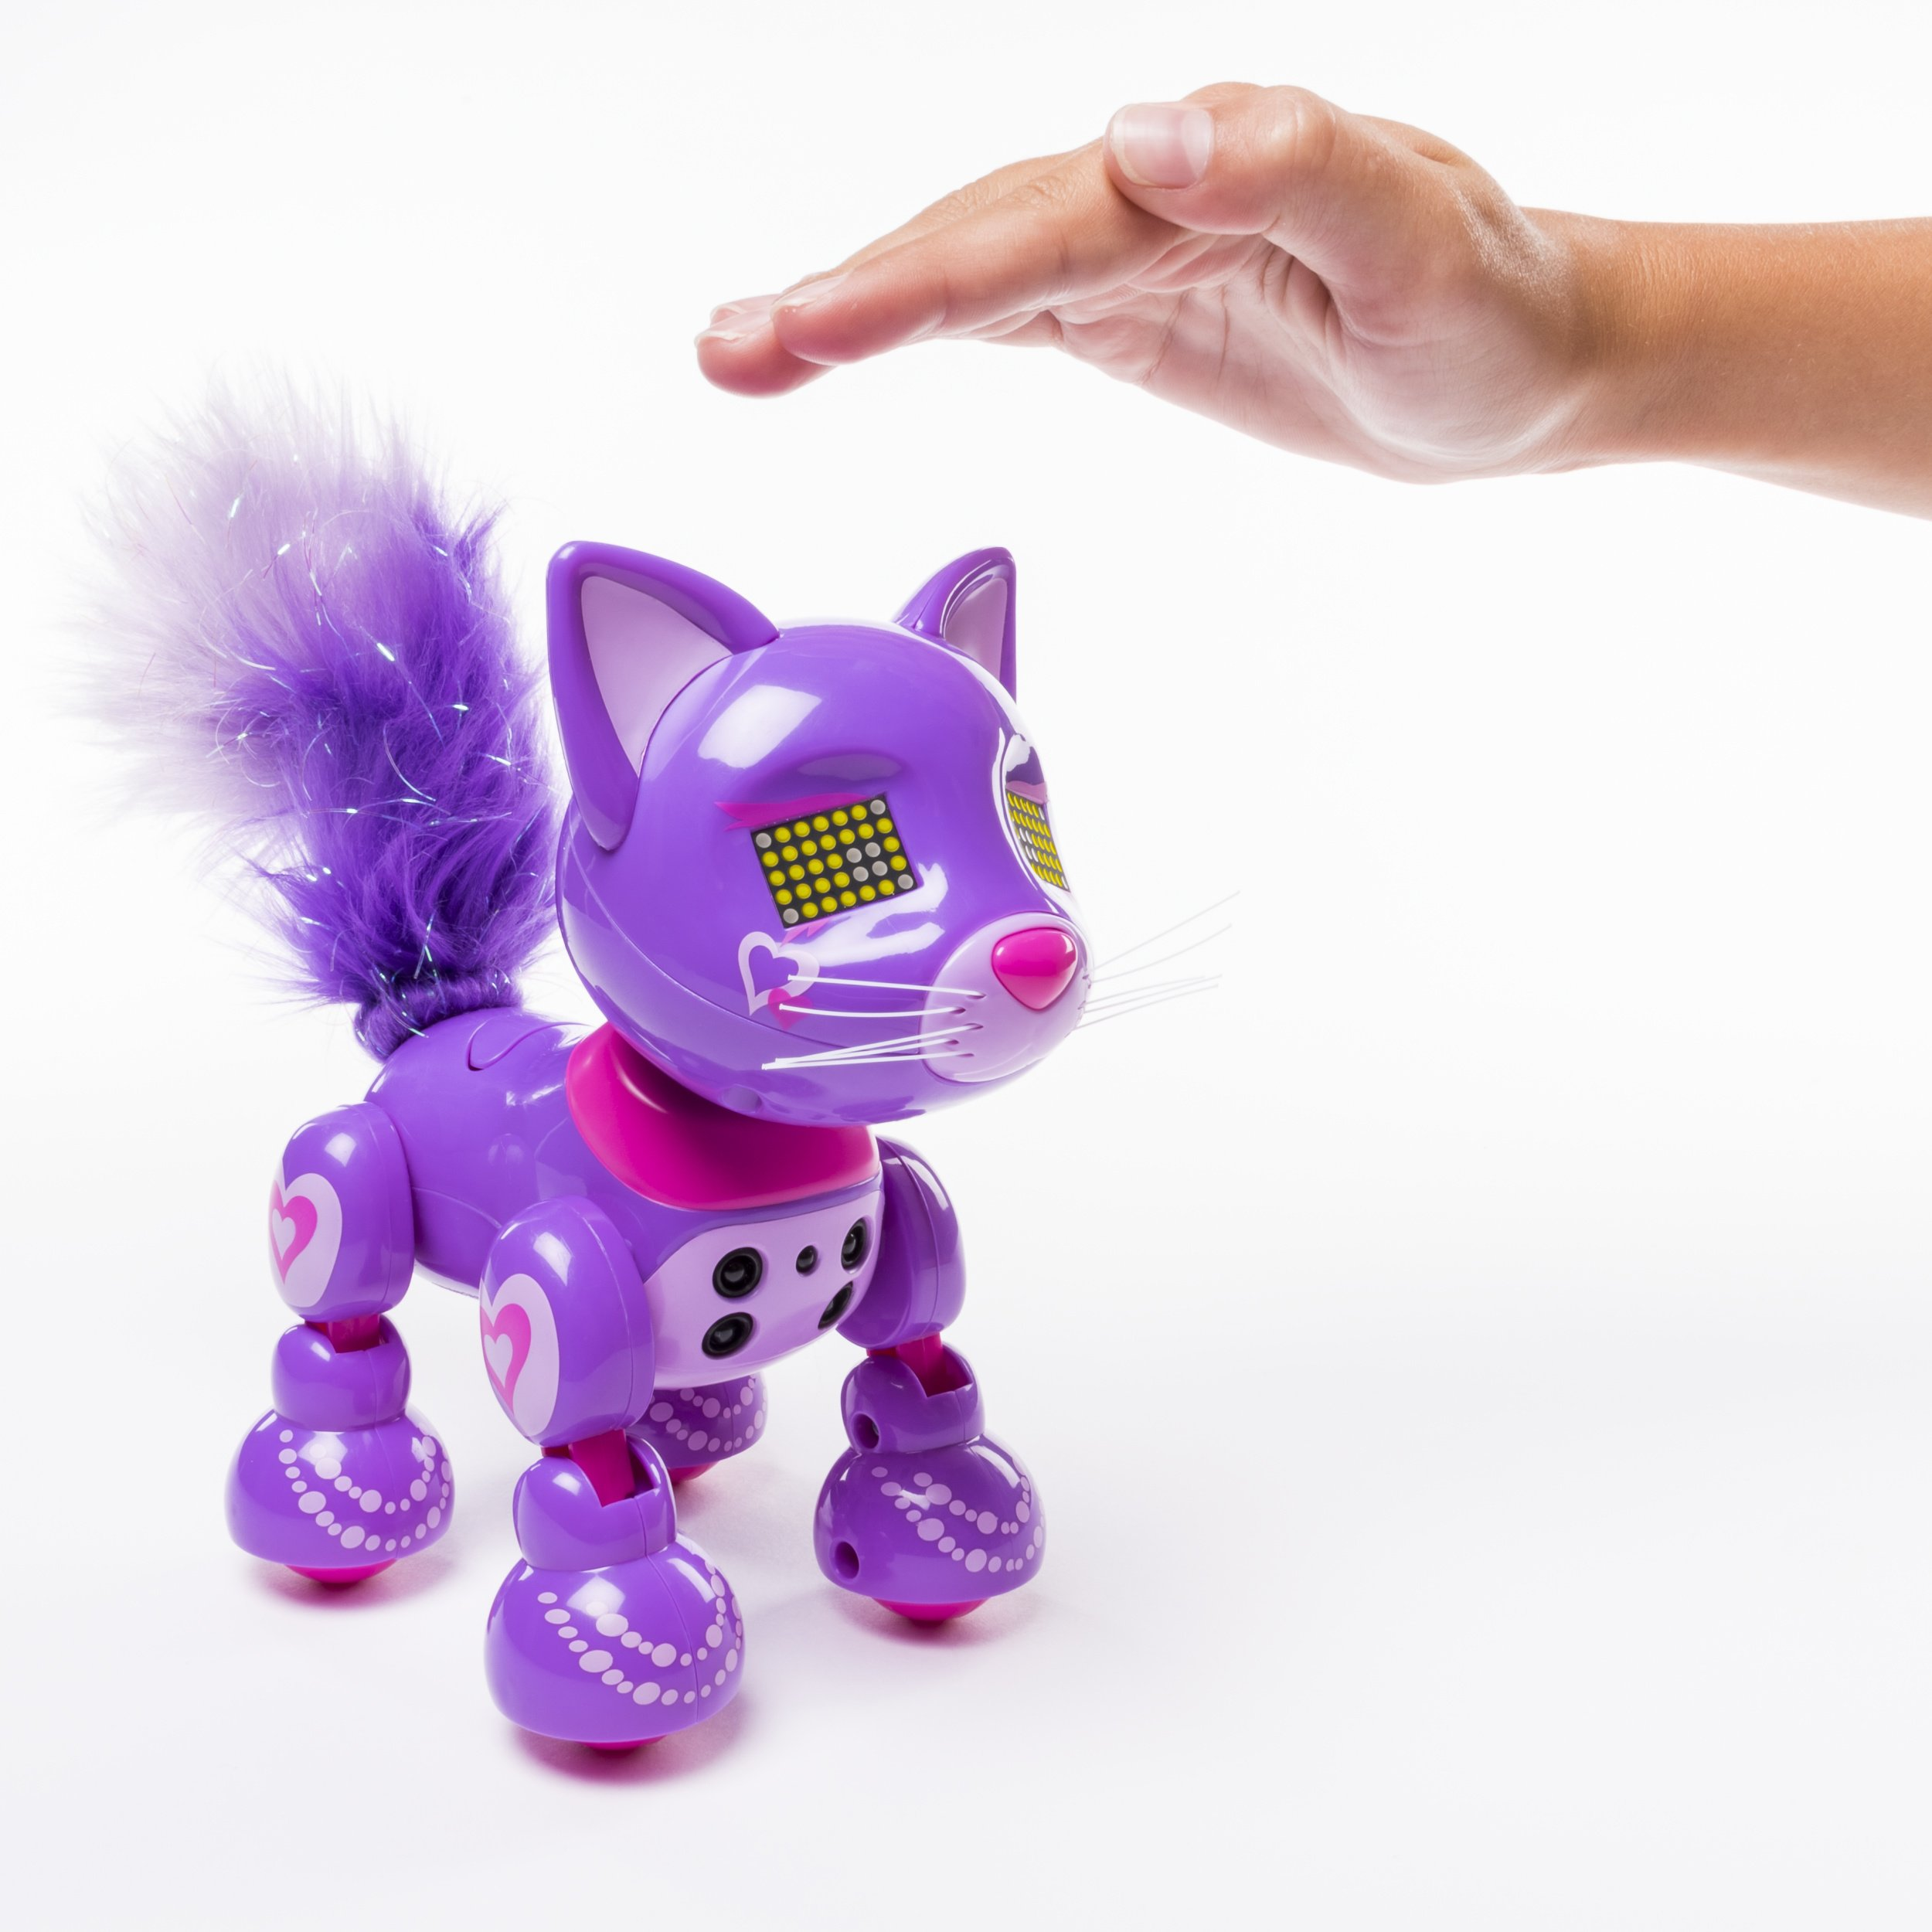 Zoomer Meowzies, Posh, Interactive Kitten with Lights, Sounds and Sensors by Zoomer (Image #7)